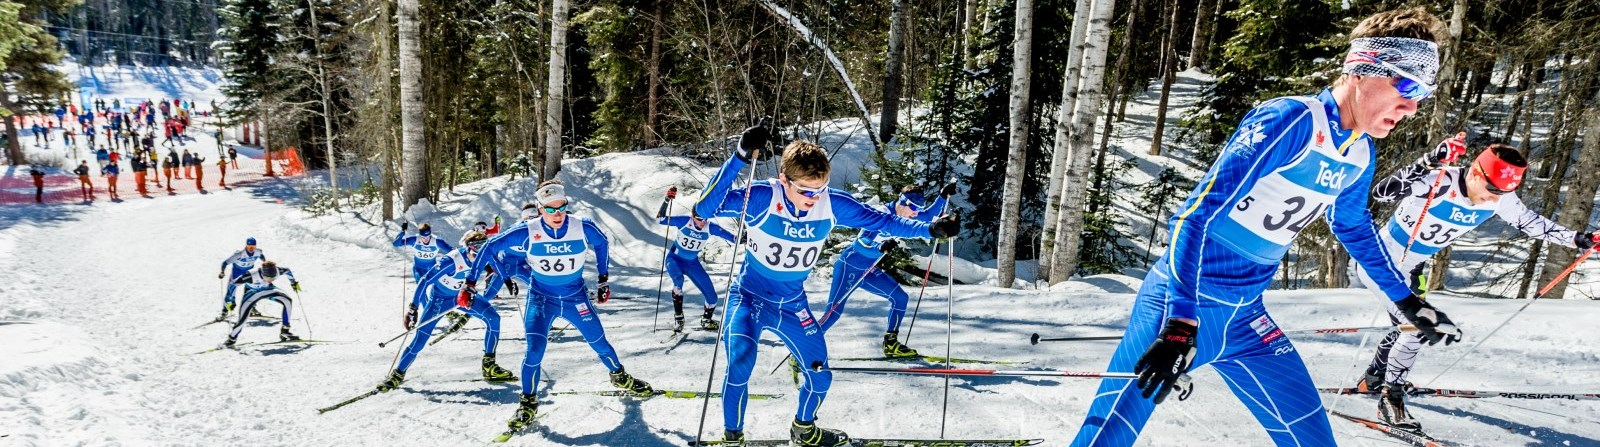 Cross Country Ski Race - by G. Robinson